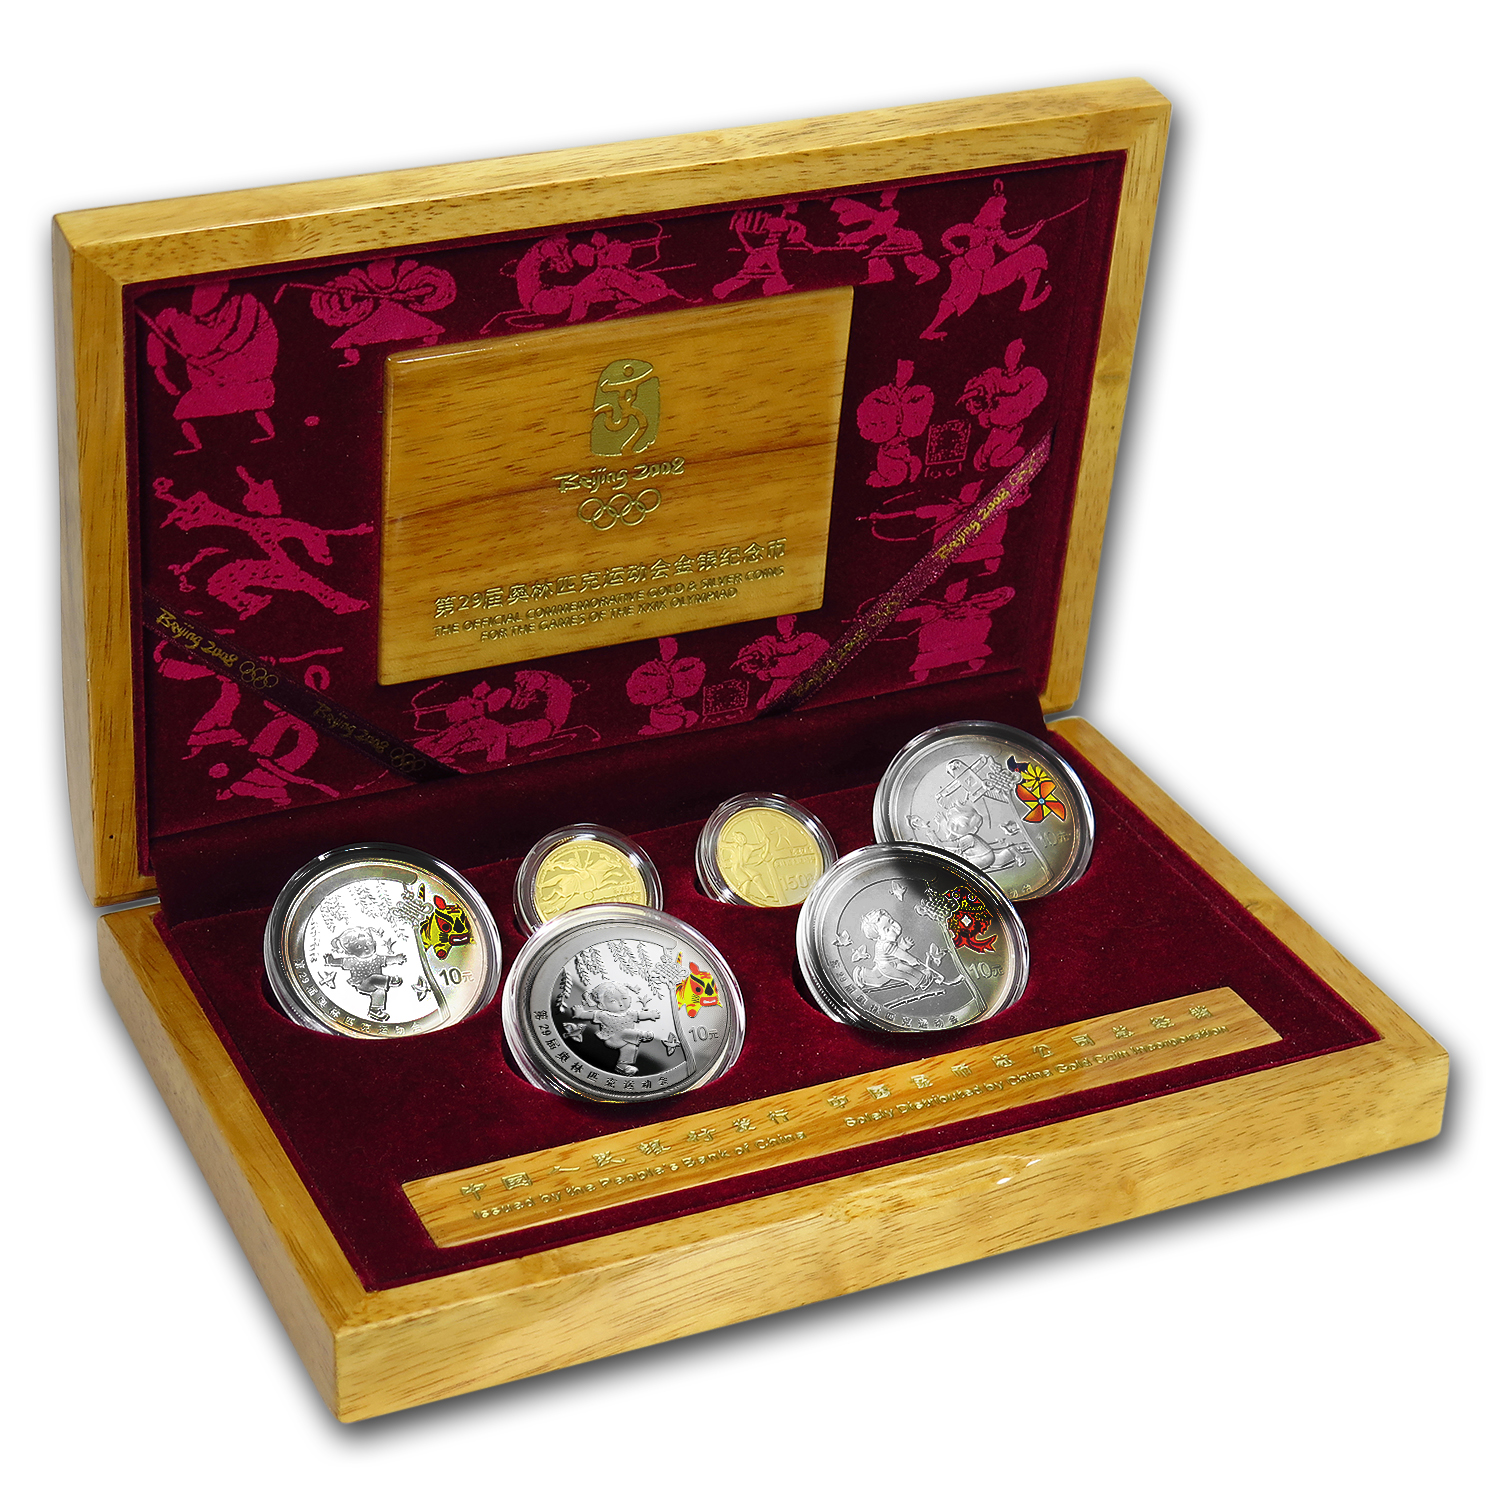 2008 China 6-Coin Gold & Silver Olympic Proof Set (Series III)